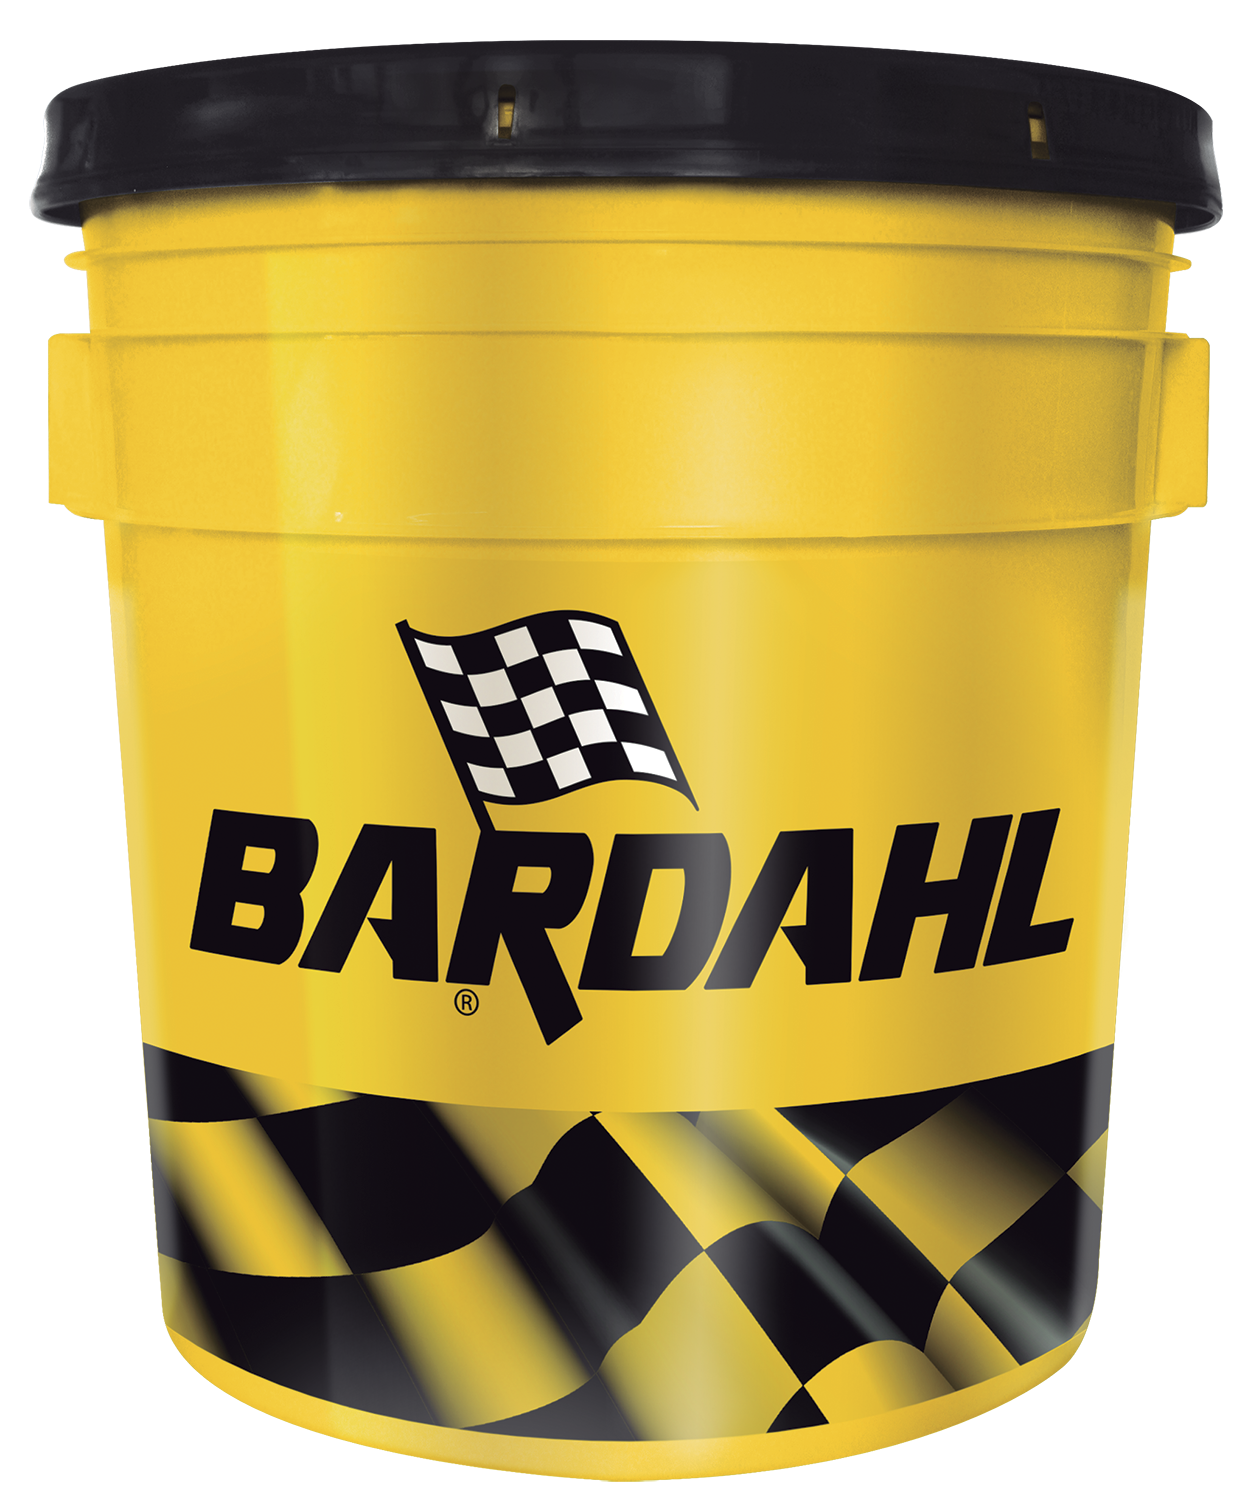 BARDAHL F-1 MR, Super Racing Oil SAE 15W40 API SL